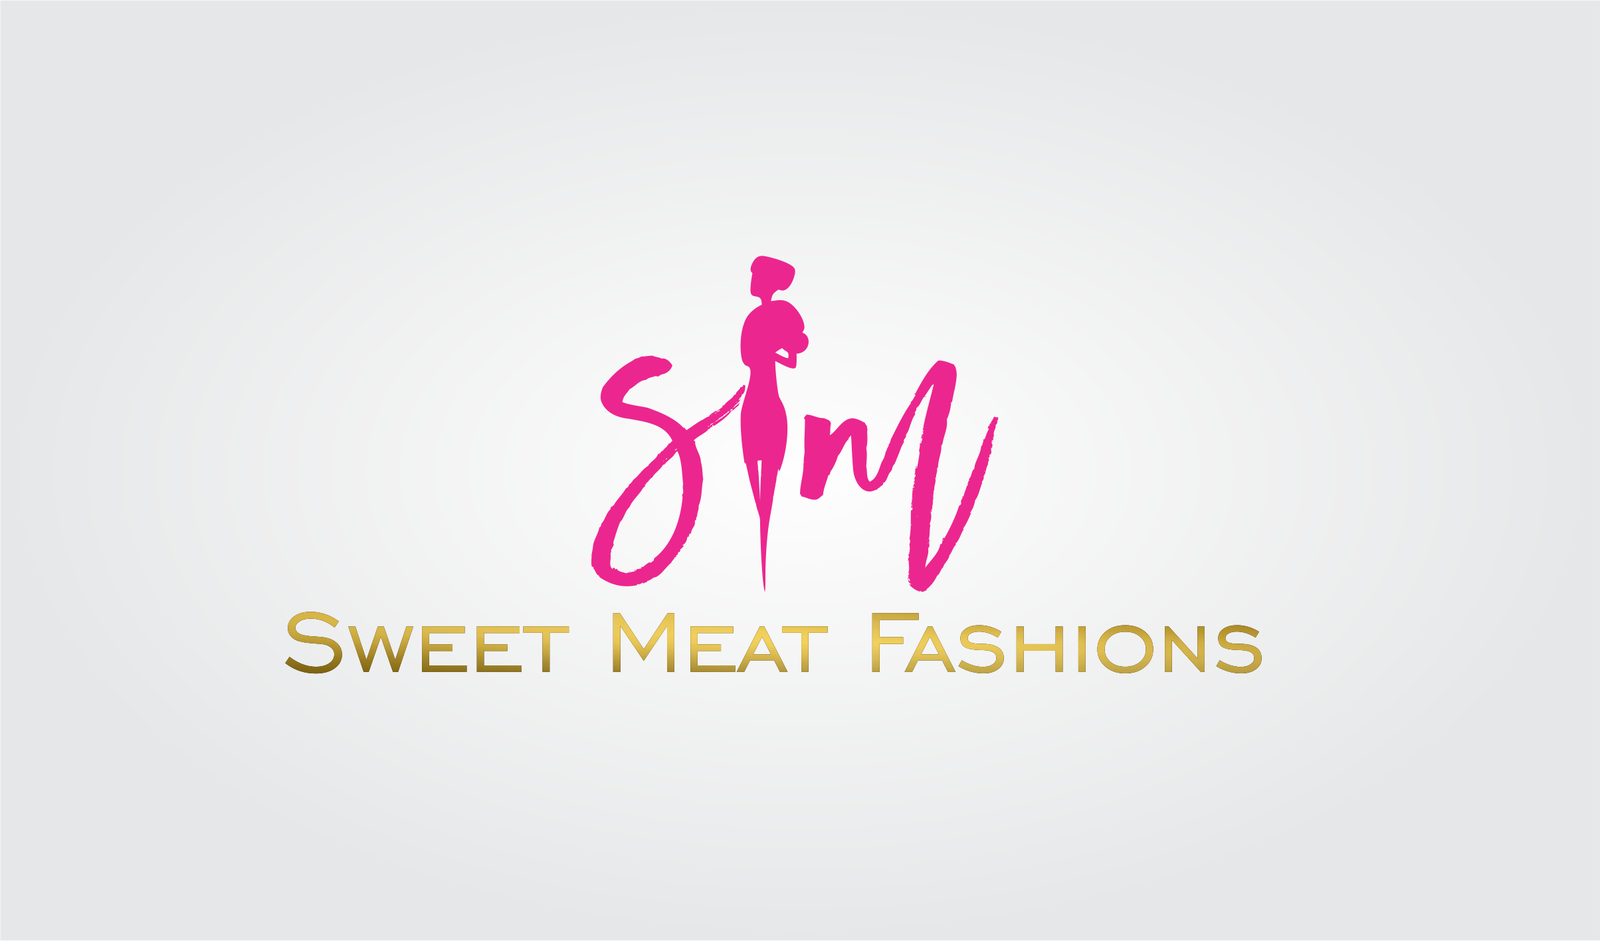 sweetmeatfashions